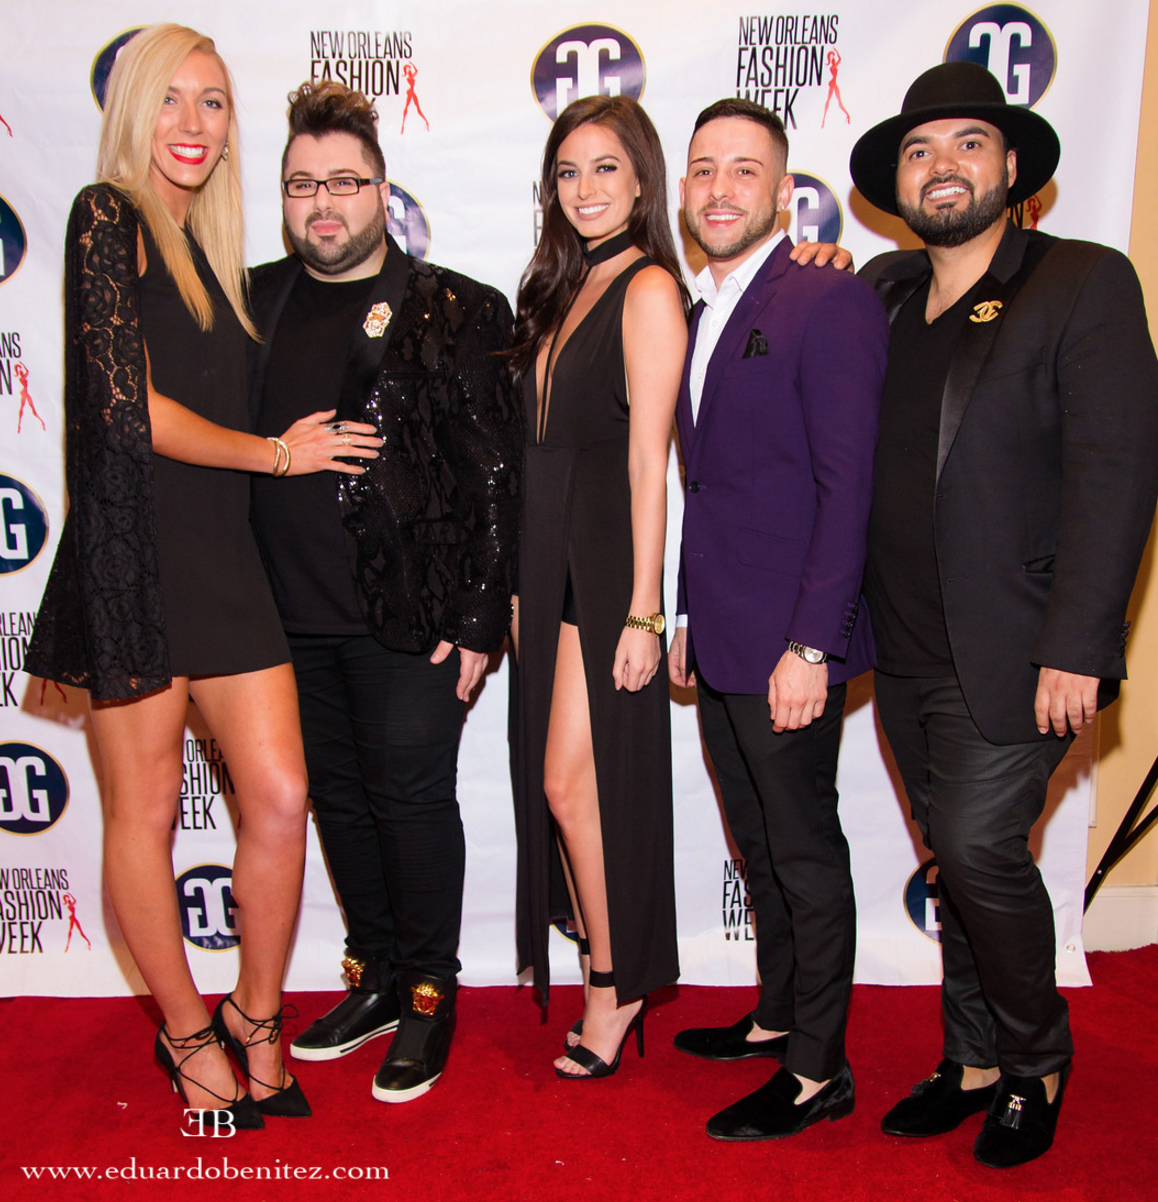 red carpet with pedram couture and friends/  photographer eduardo benitez